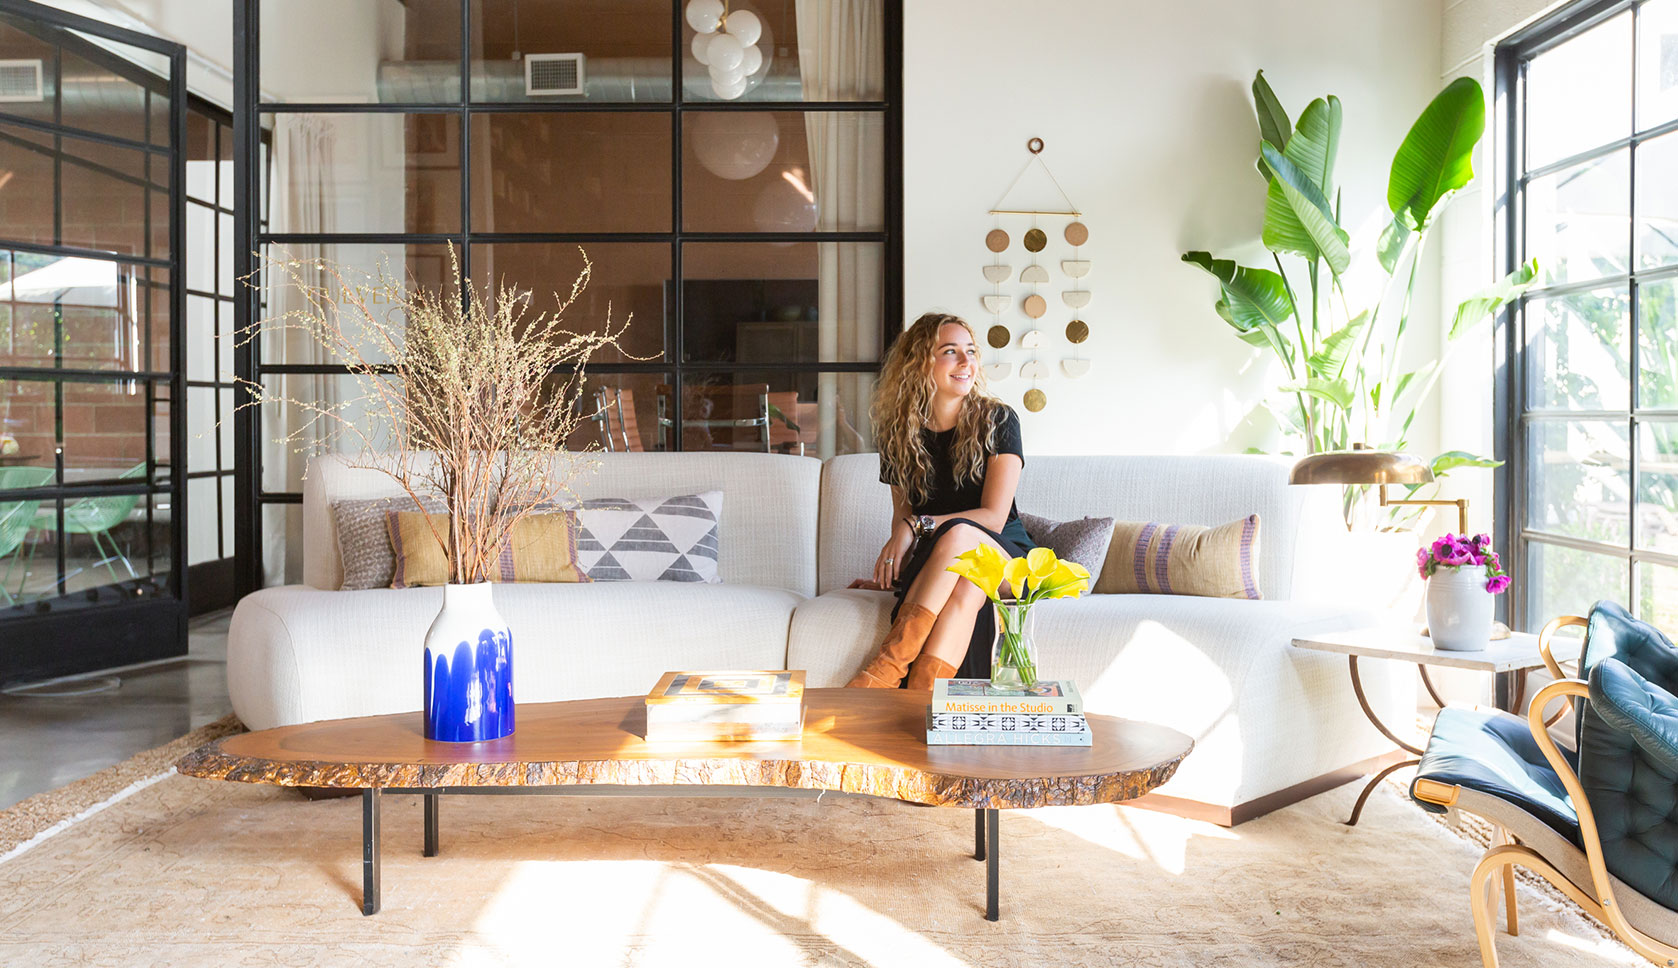 images of an office warehouse home tours may 23 2018 an office worthy of an interior design startup rue